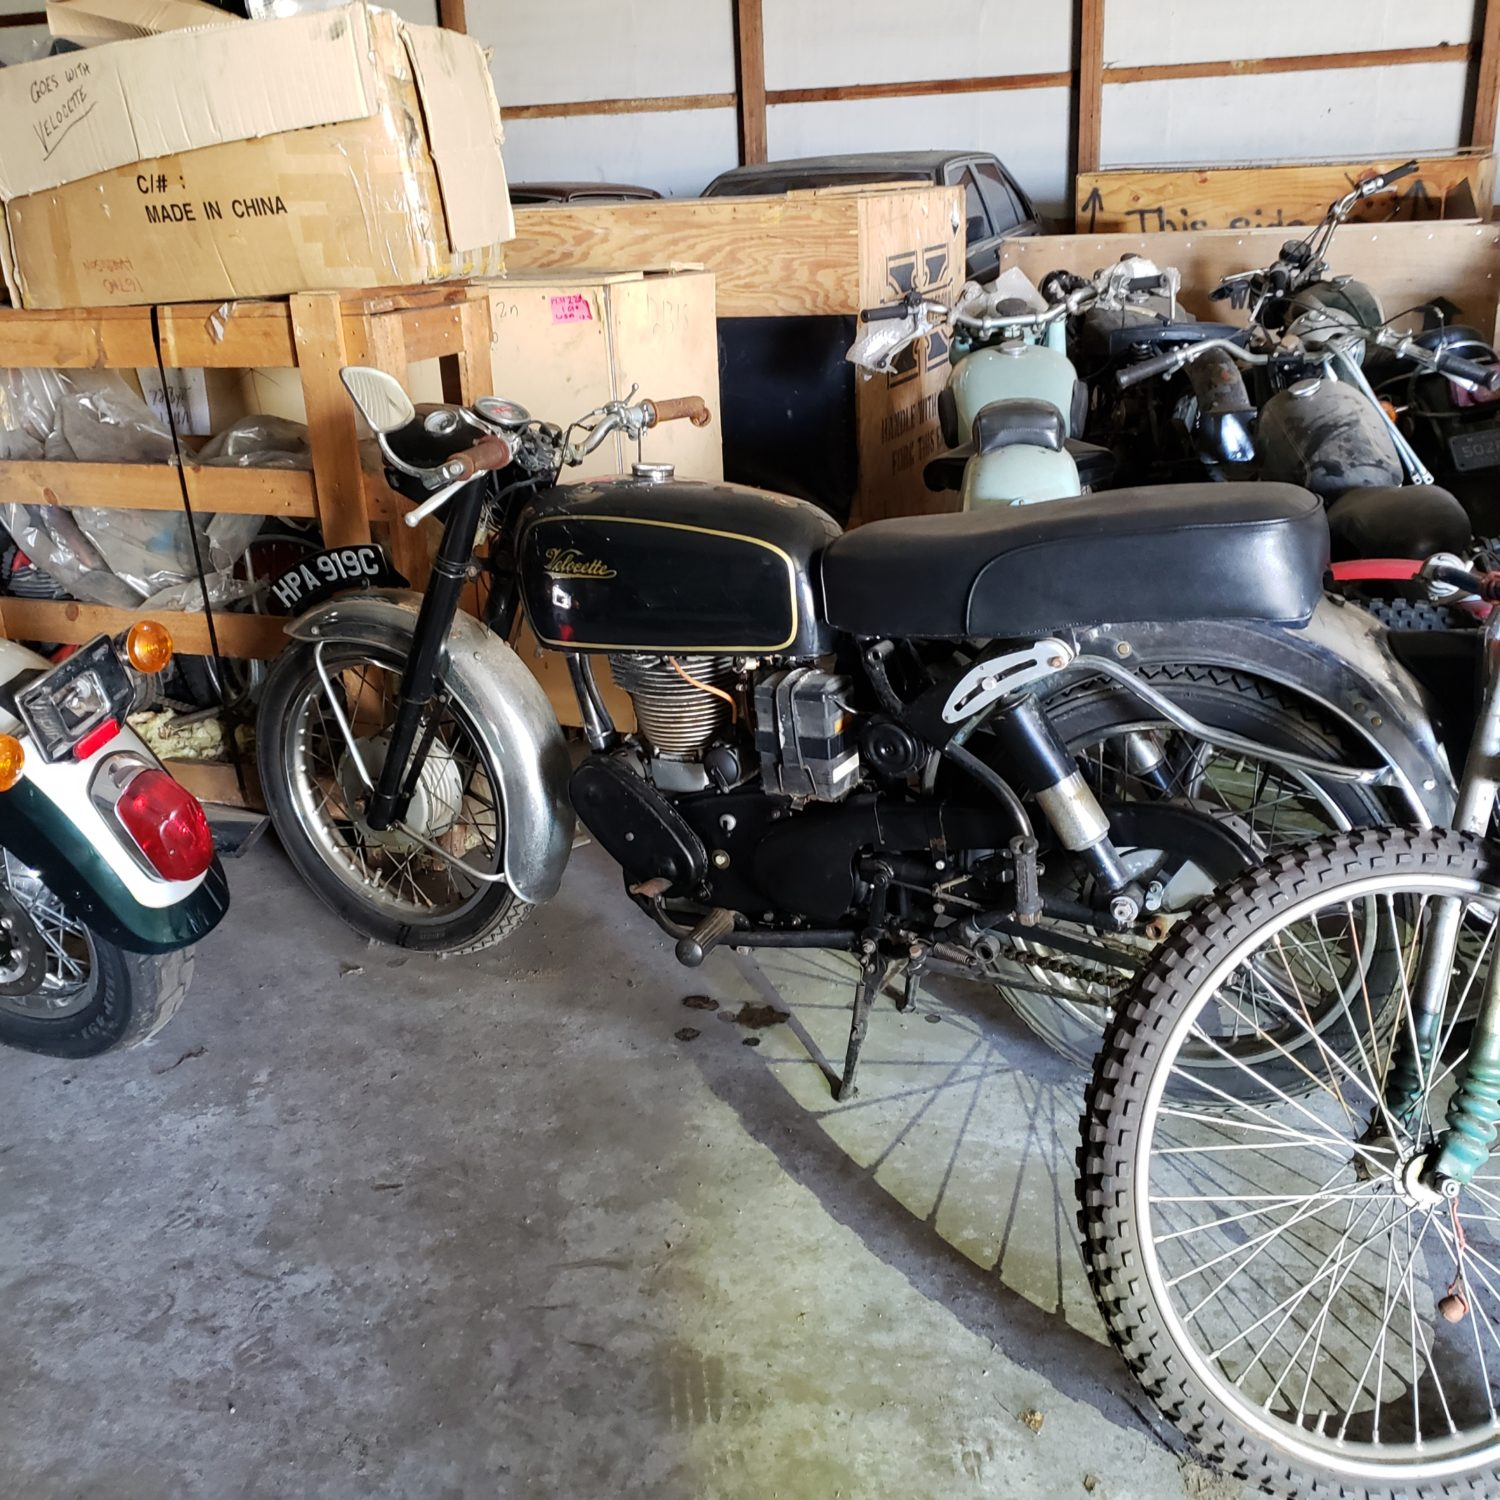 Amazing Vintage Motorcycles, Race Cars, Collector Cars & Parts! Watch for details! The JAB Collection - image 4